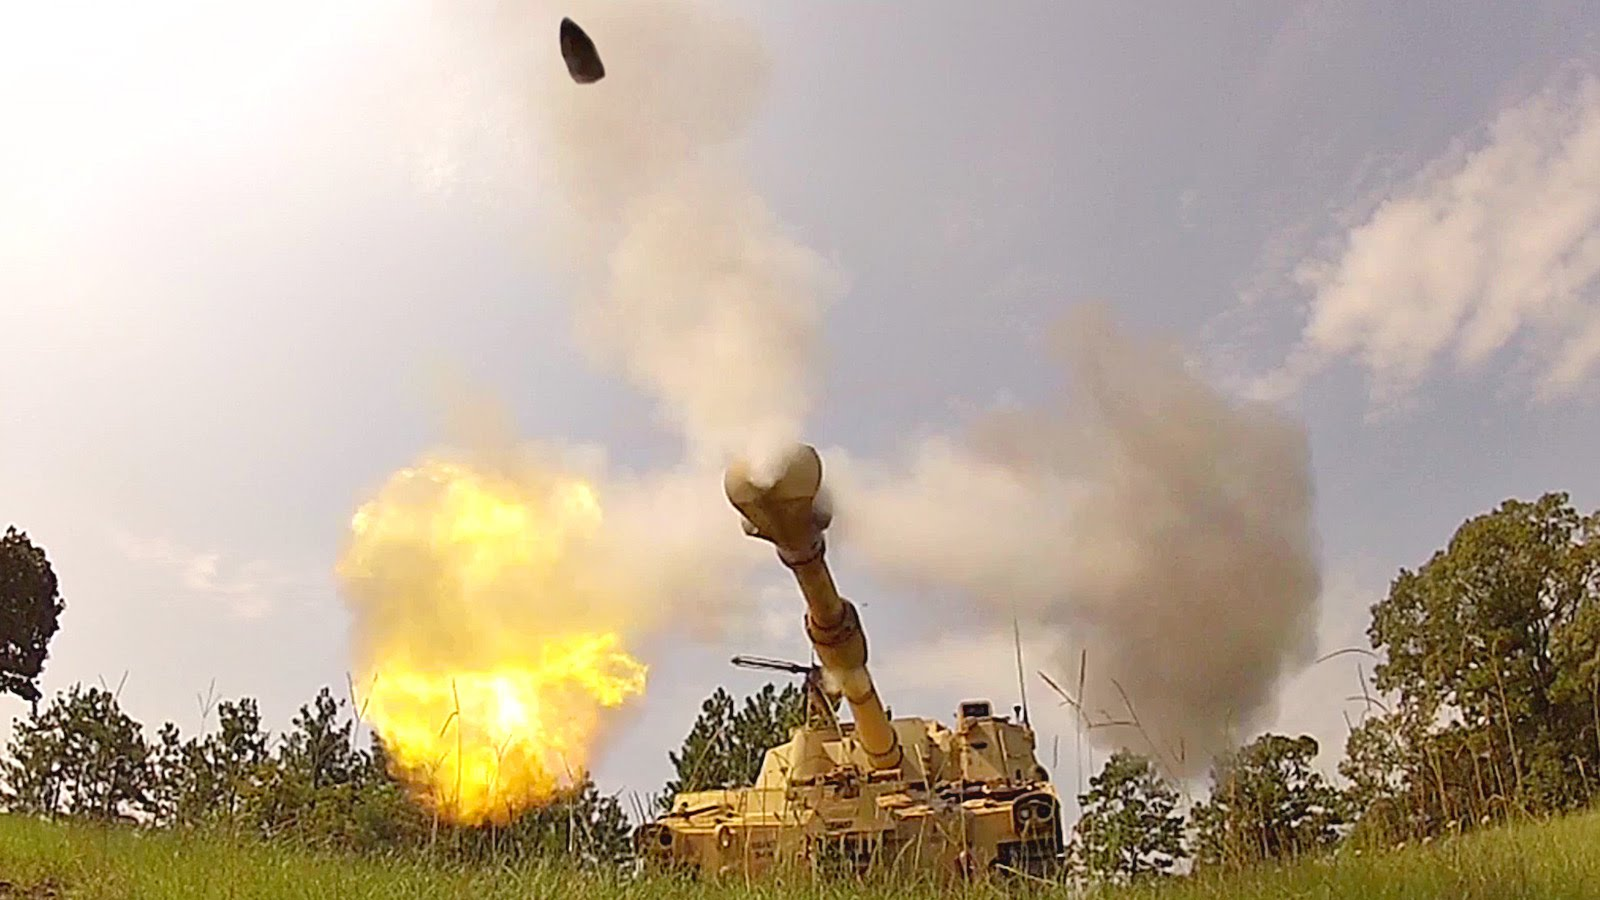 Deadly Powerful M109A6 Paladin Self-Propelled Howitzer Live Fire